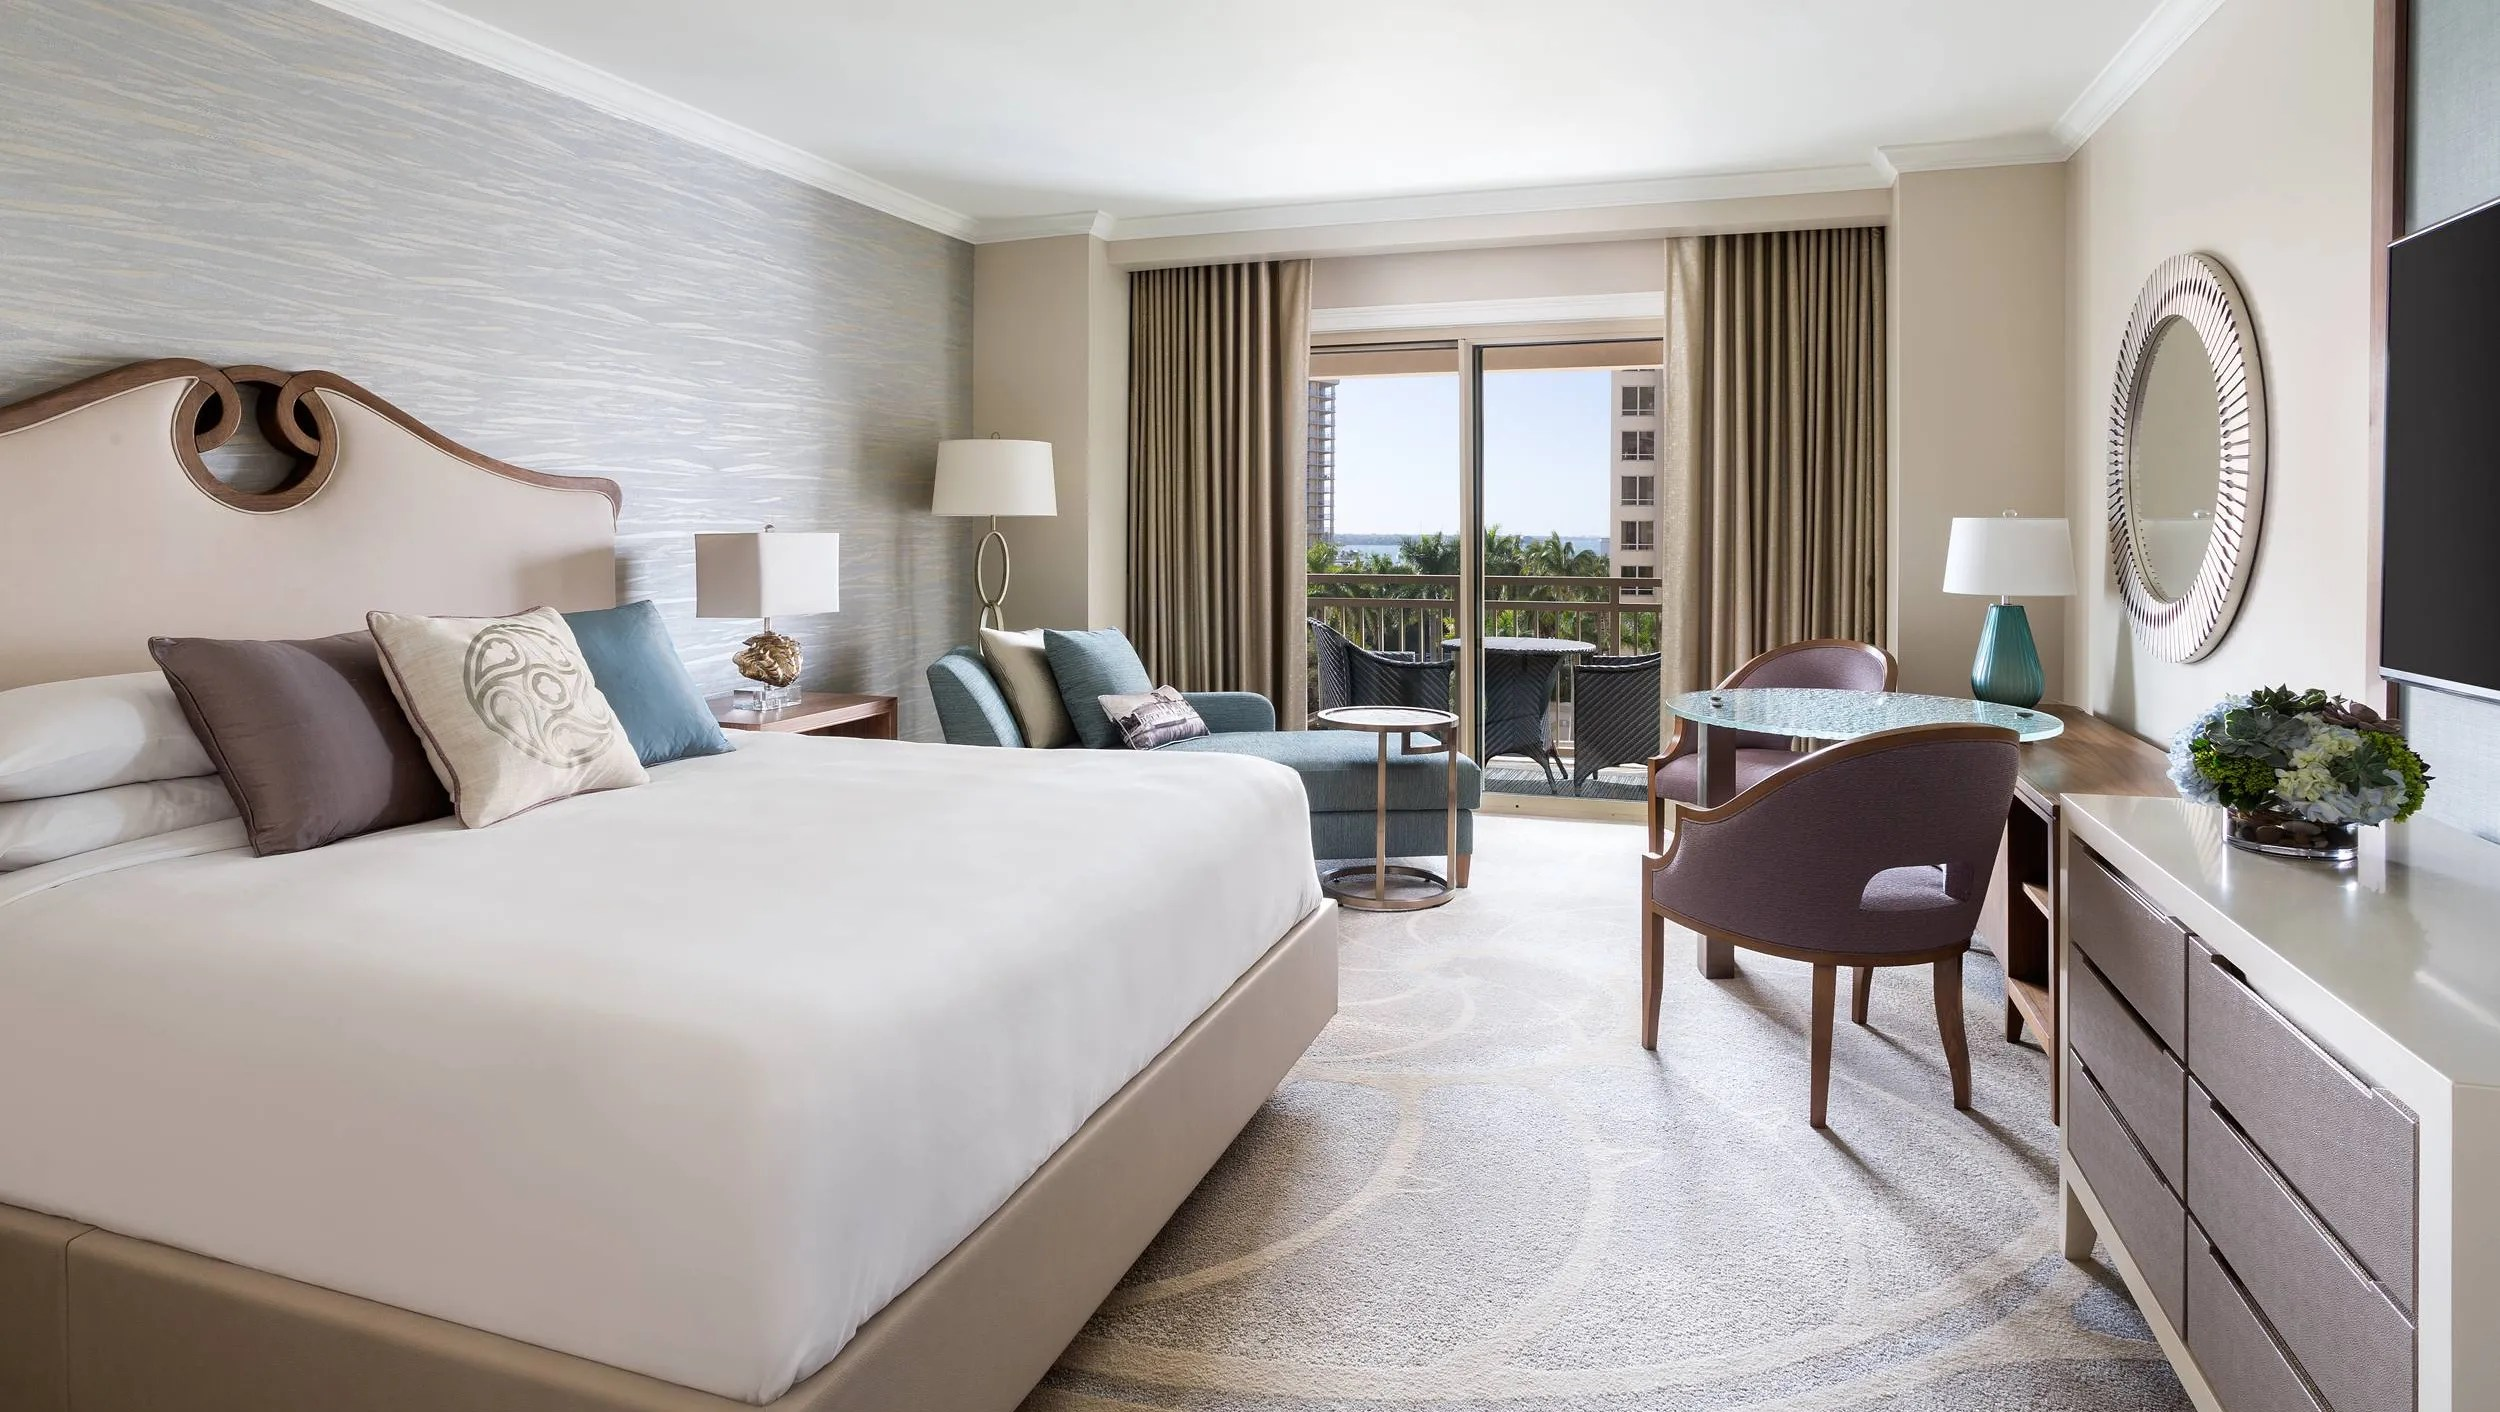 Favorite upscale hotels: Top picks from our travel panel